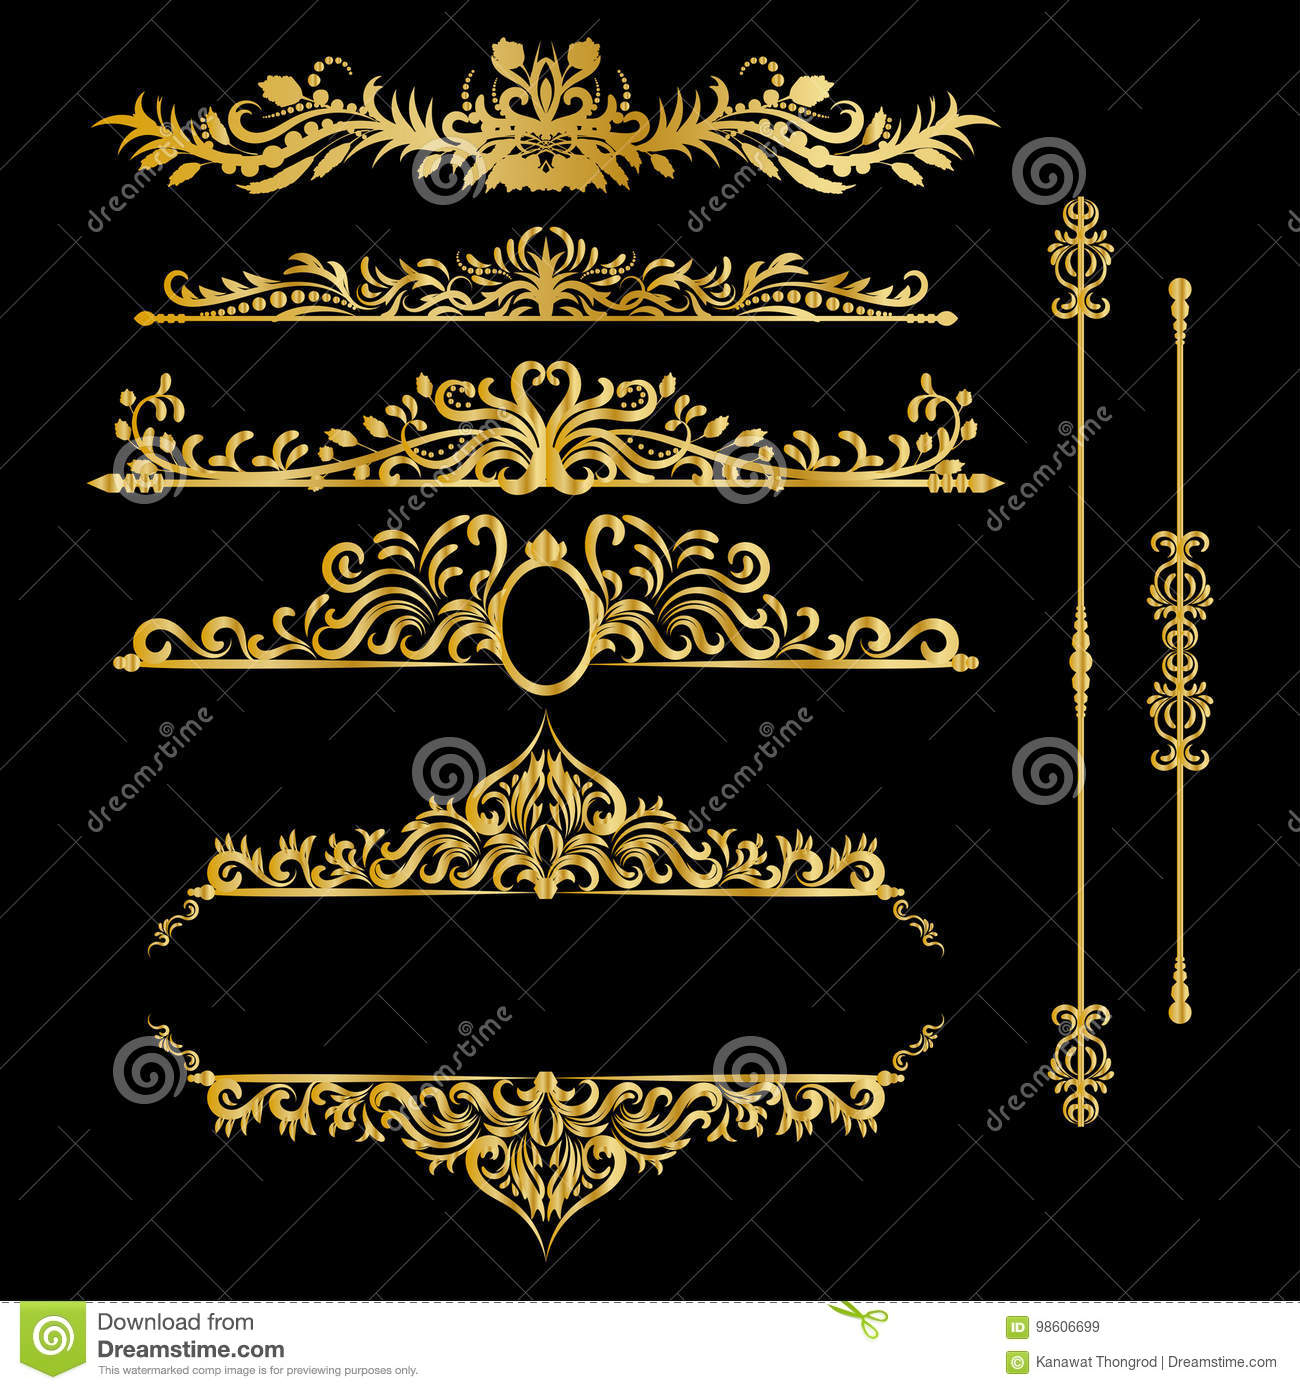 Color Gold Vintage Decorations Elements. Flourishes Calligraphic Ornaments and Frames. Retro Style Design